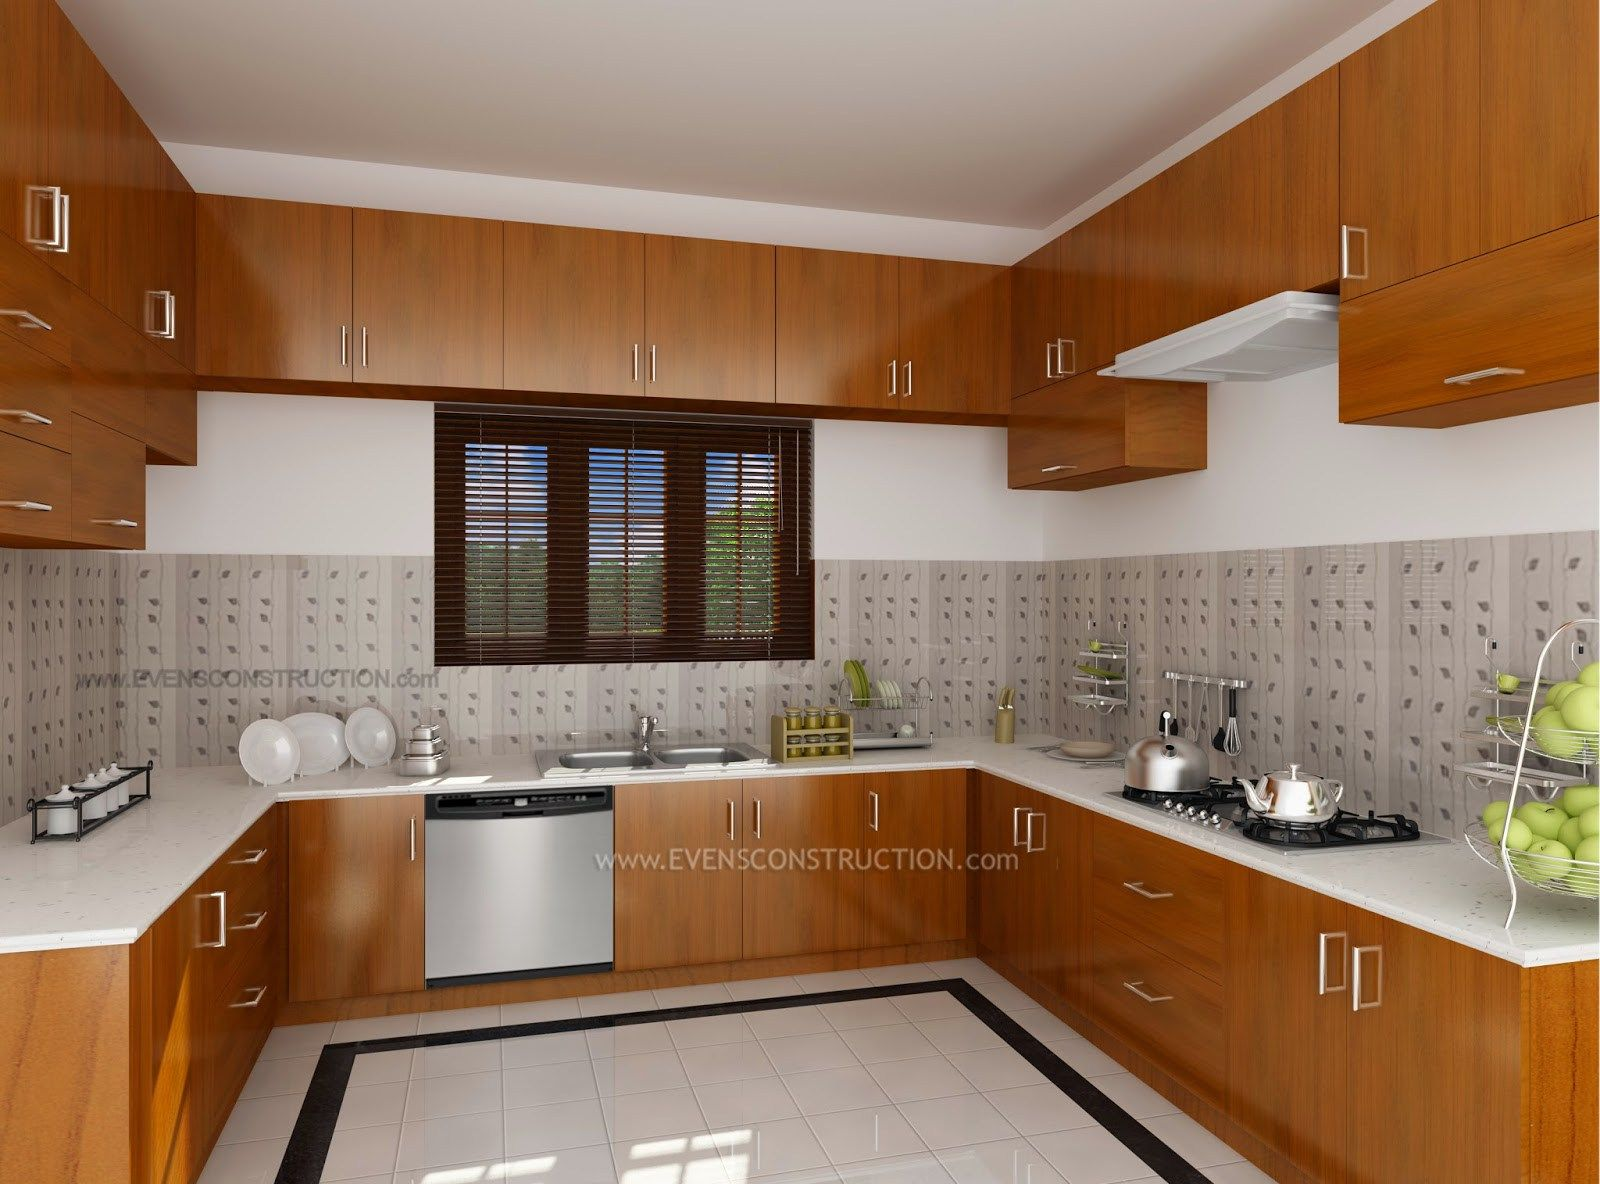 Design interior kitchen home kerala modern house kitchen for New kitchen designs in kerala